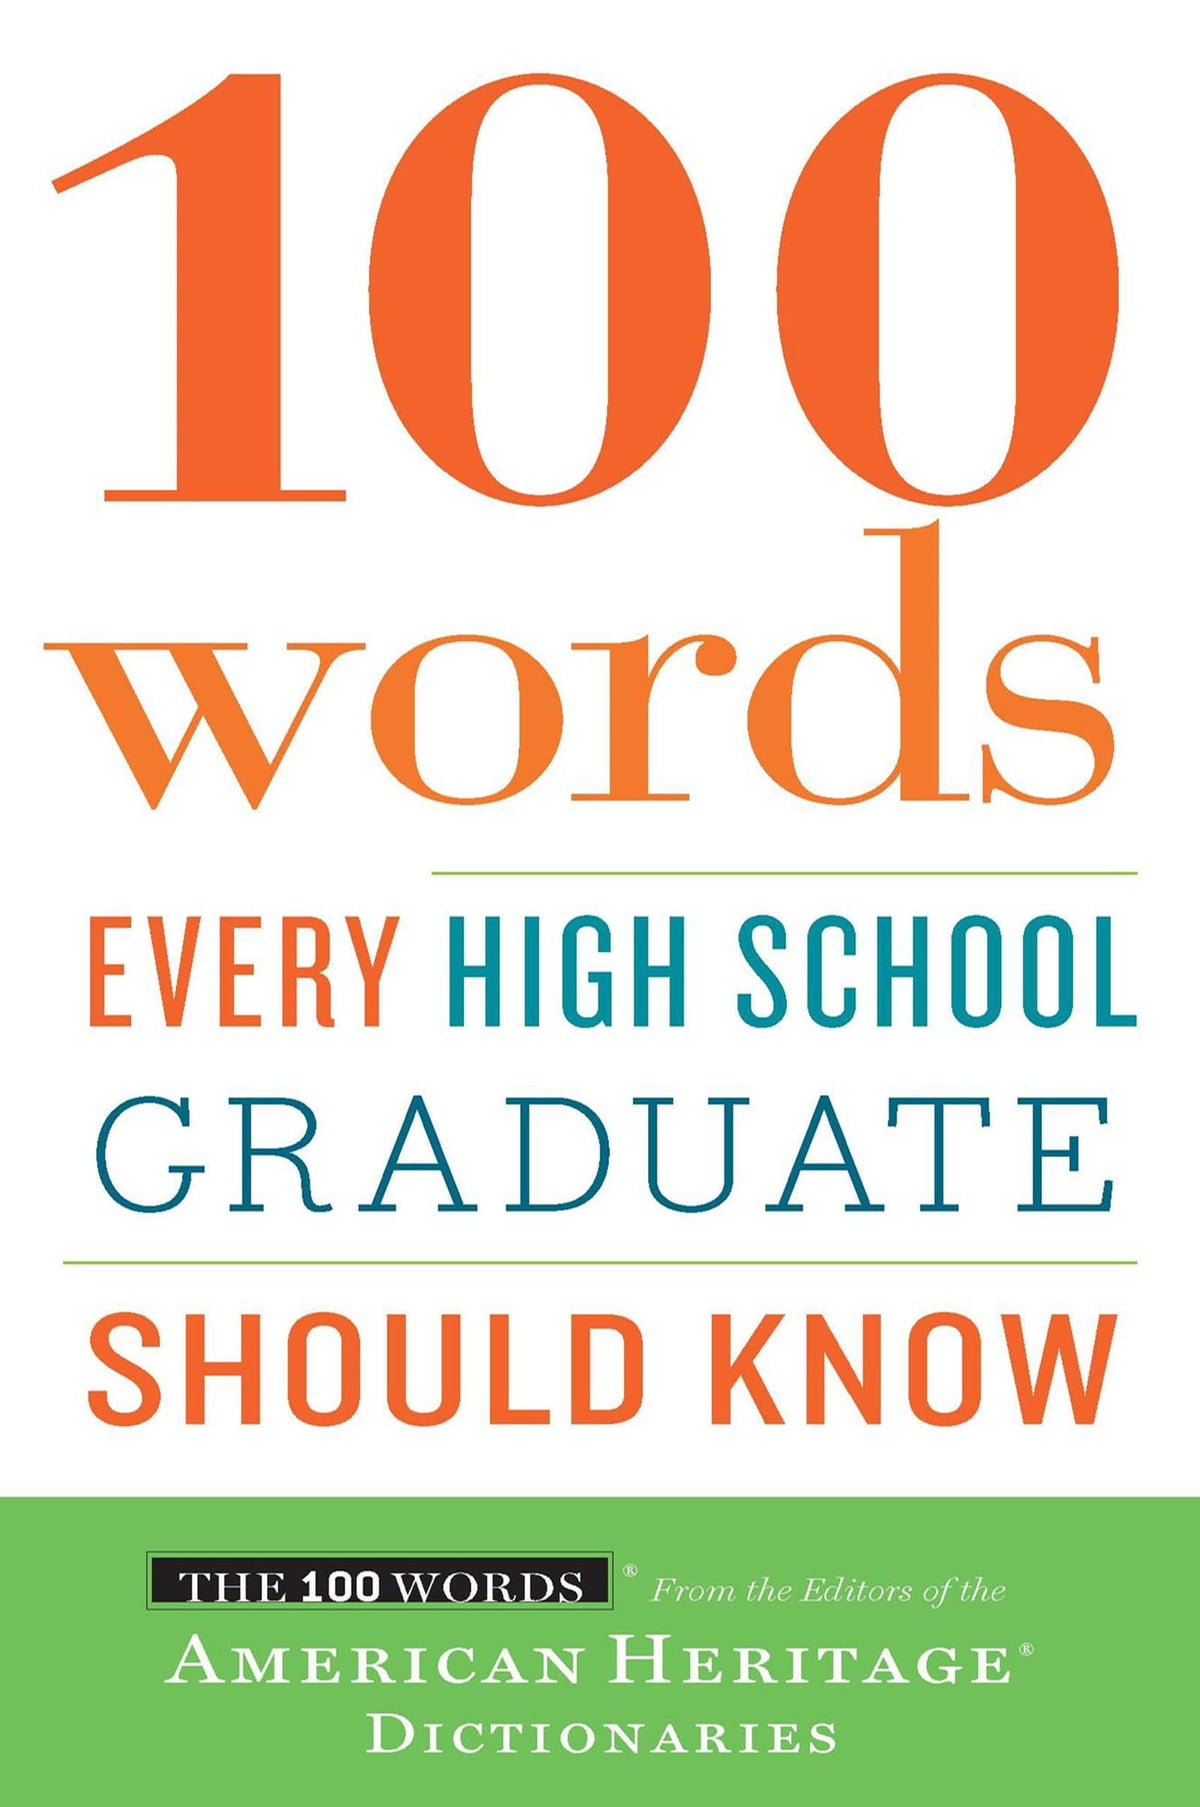 100 Words Every High School Graduate Should Know eBook by - 9780547350233 |  Rakuten Kobo